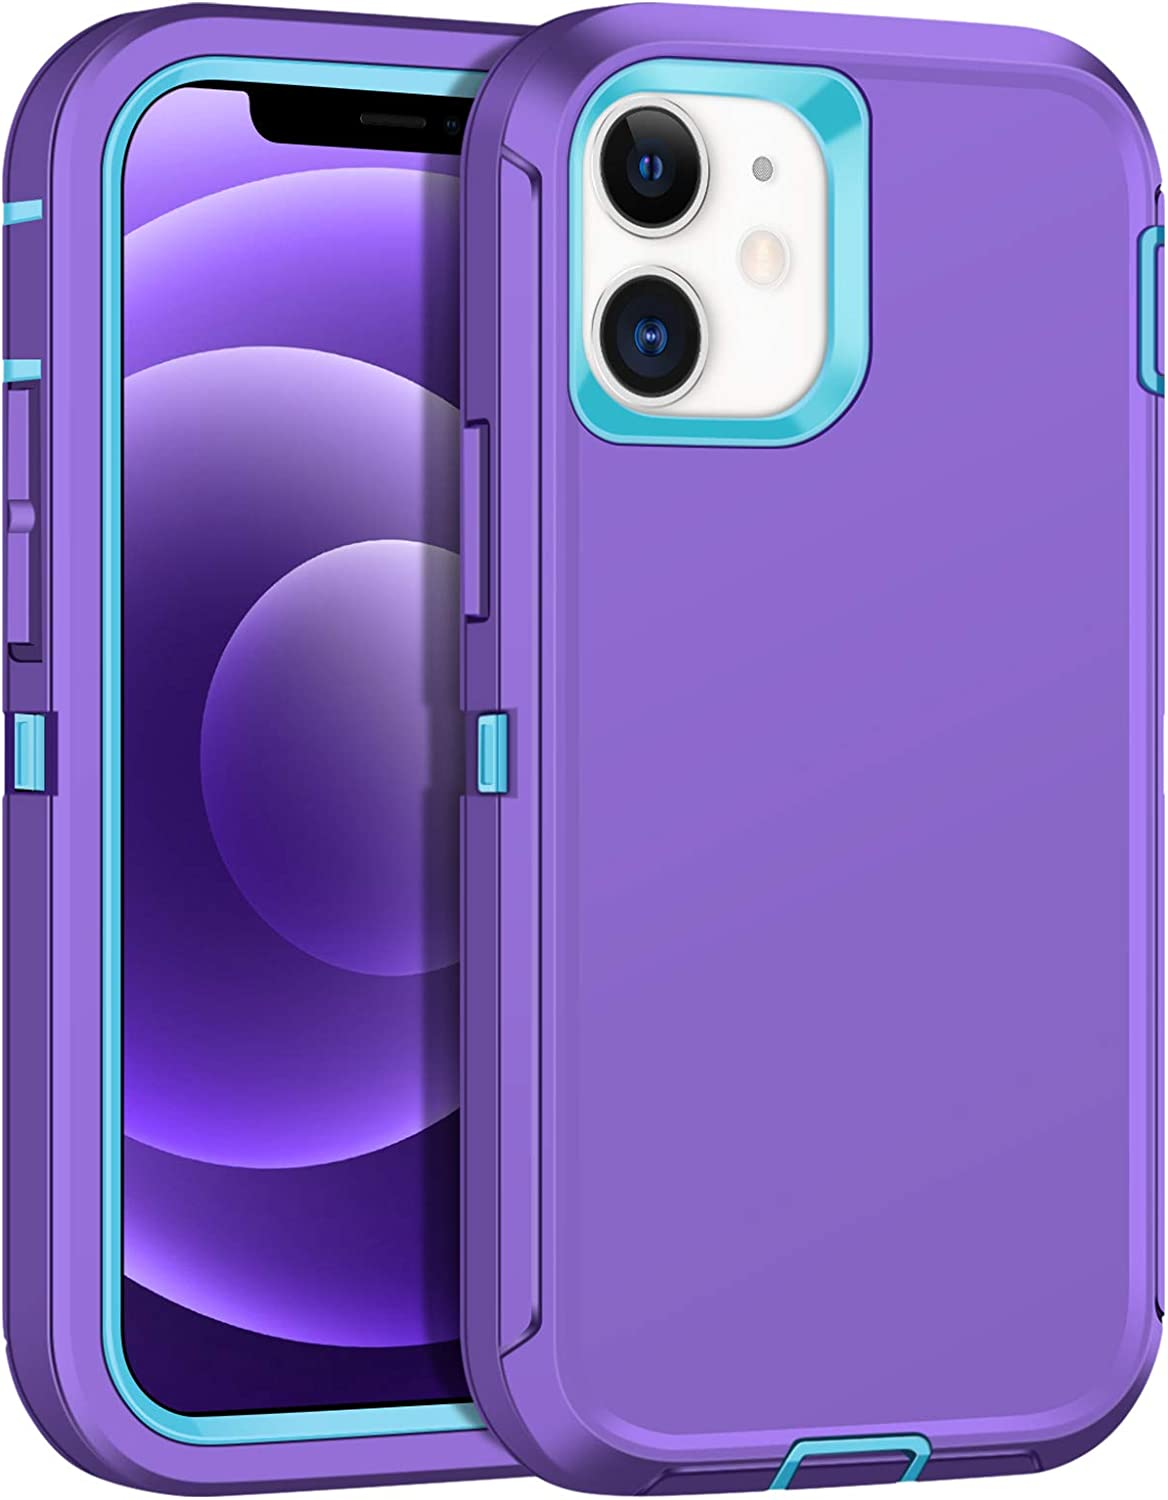 JAKPAK Case Compatible with iPhone 12 Case iPhone 12 Pro Case Heavy Duty Shockproof Protective Shell Hard PC Bumper Soft TPU Back Cover Compatible with iPhone 12 iPhone 12 Pro 6.1 inch Purple